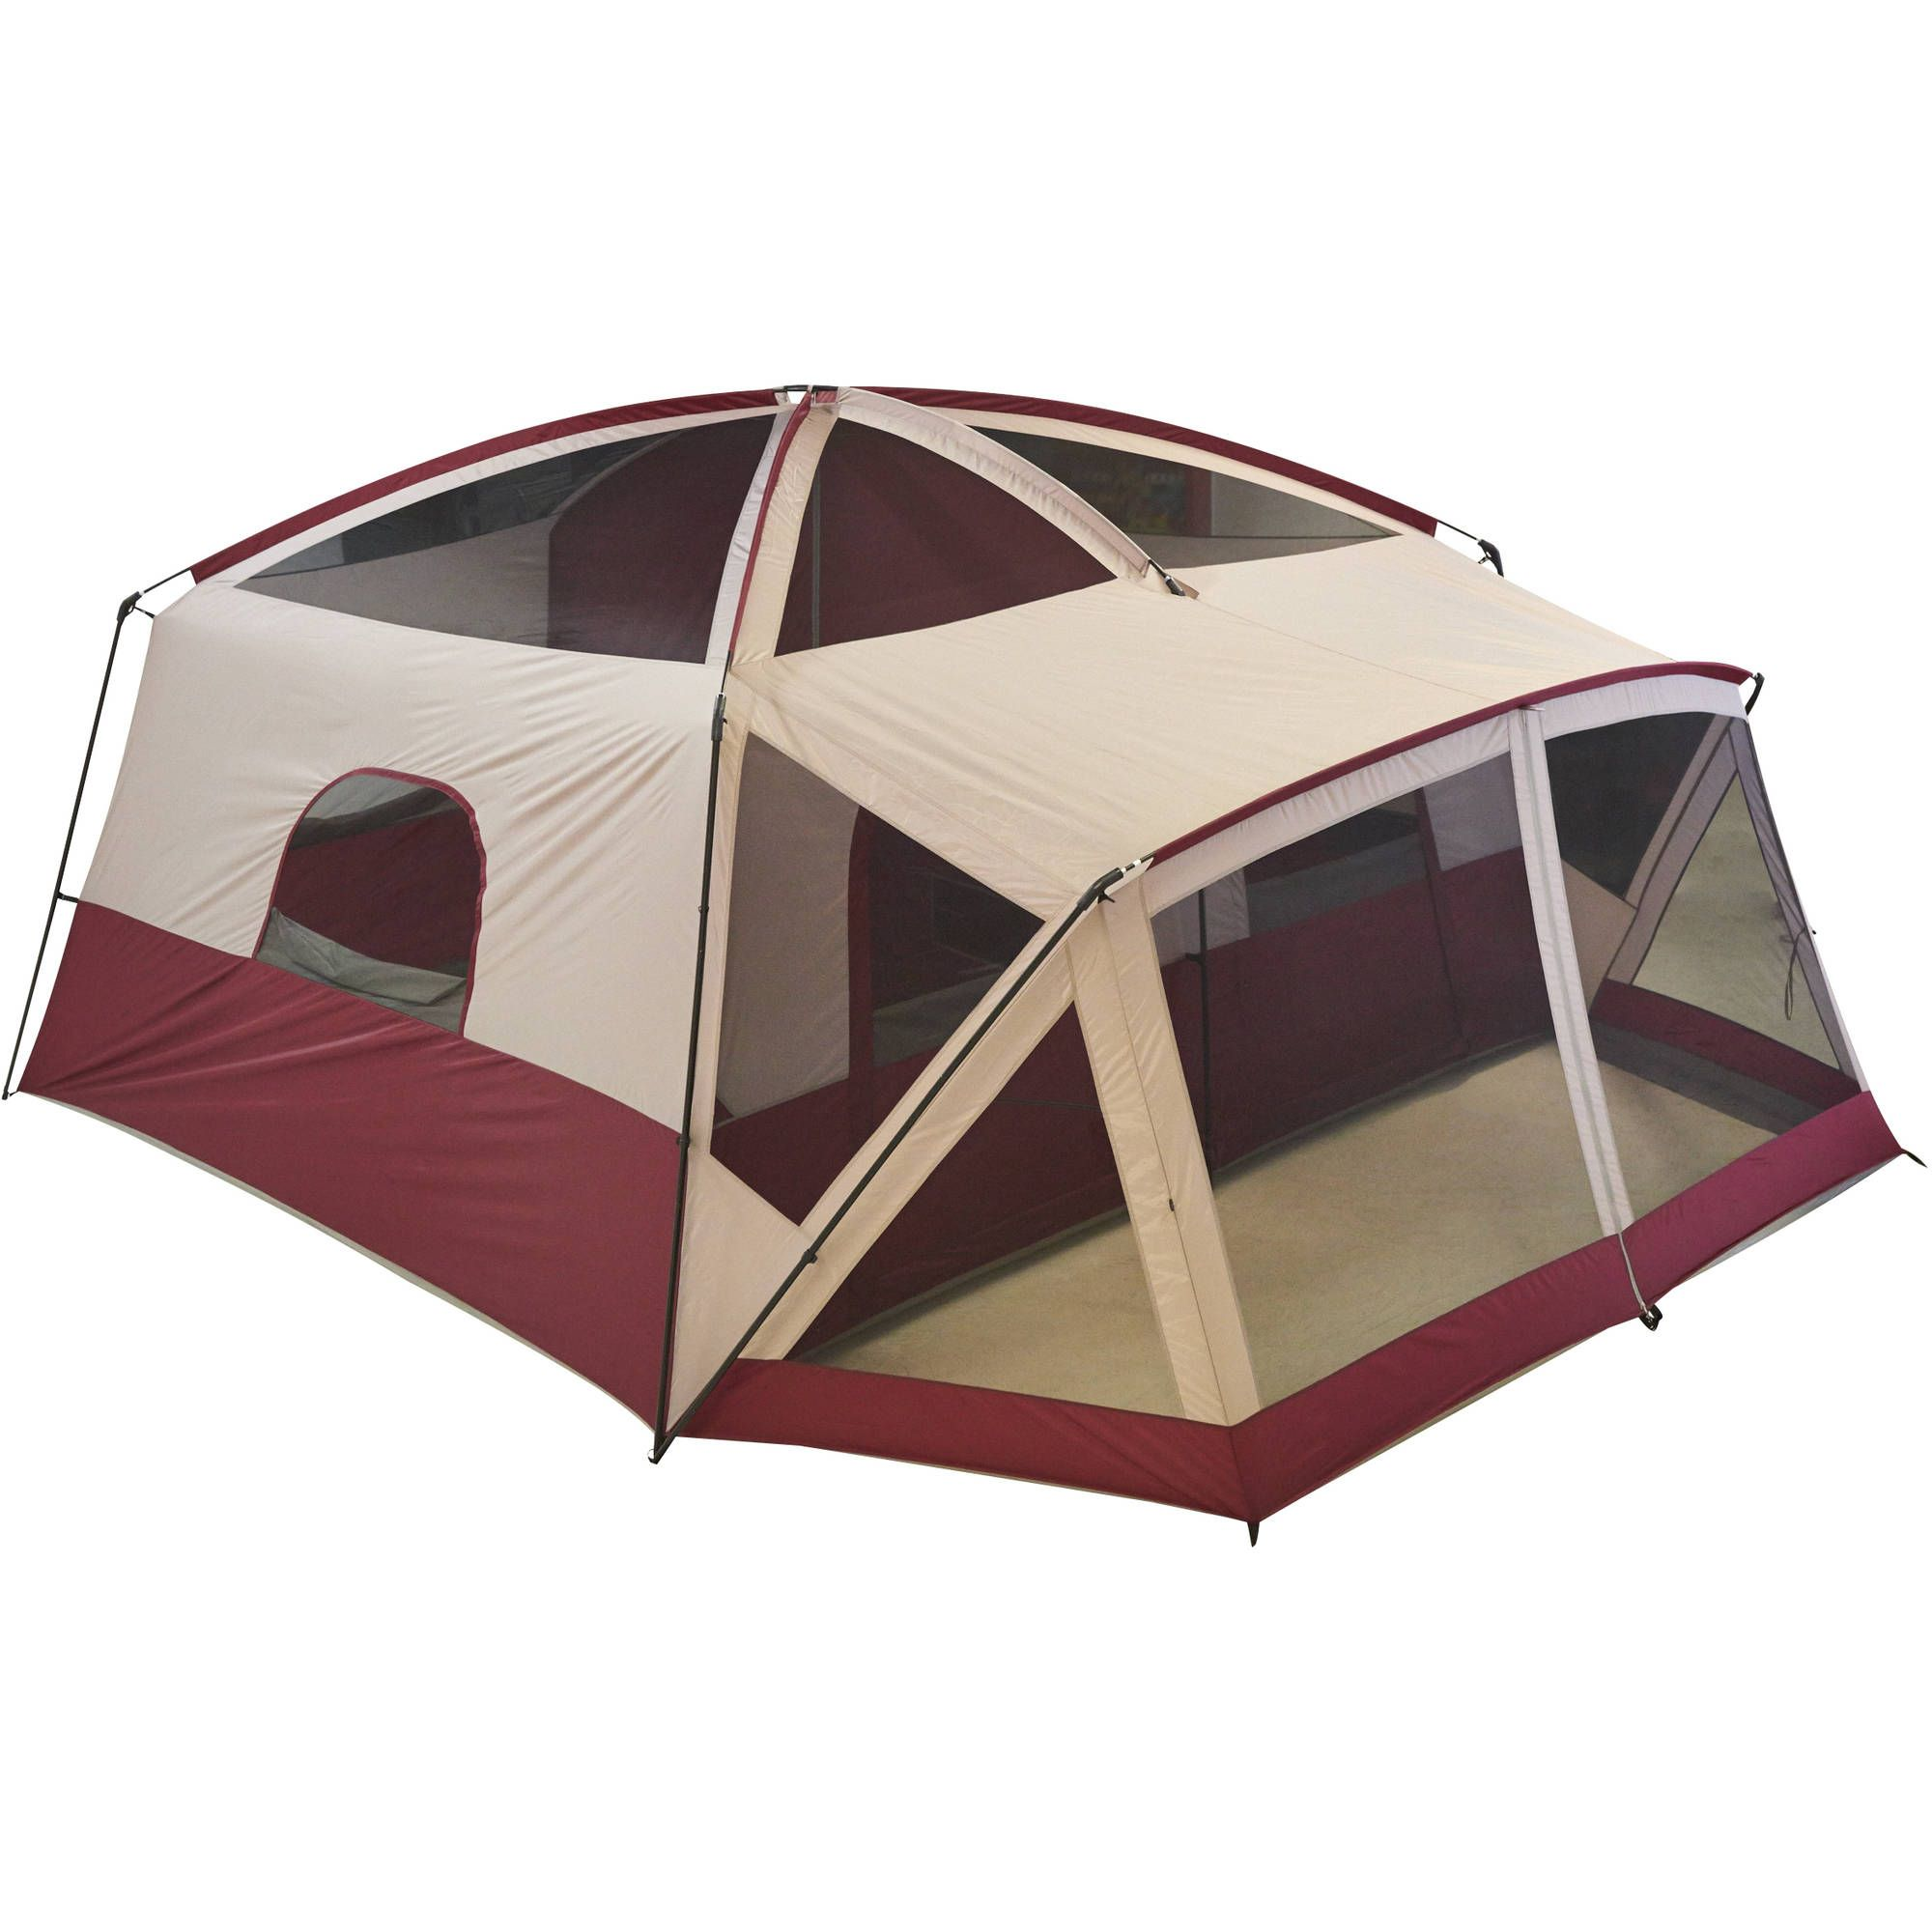 Northwest Territory Front Porch Cabin Tent 10 Person | Christie | Pinterest | Cabin tent Northwest territories and Tents  sc 1 st  Pinterest & Northwest Territory Front Porch Cabin Tent 10 Person | Christie ...